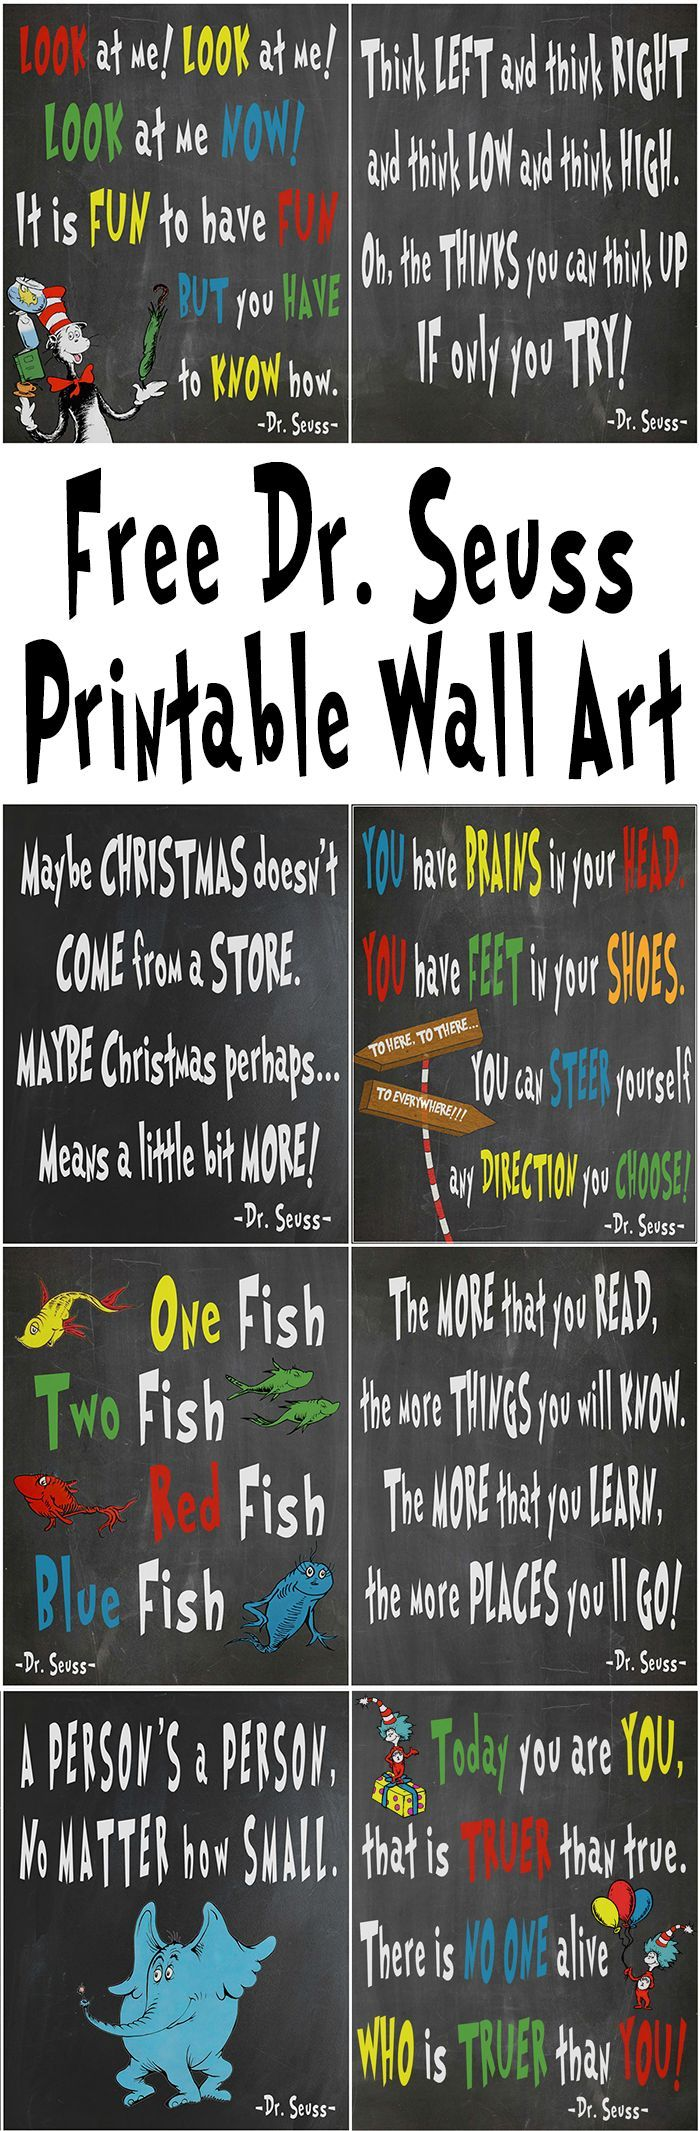 Free Decorating Ideas free dr. seuss printables for decorating a classroom or nursery